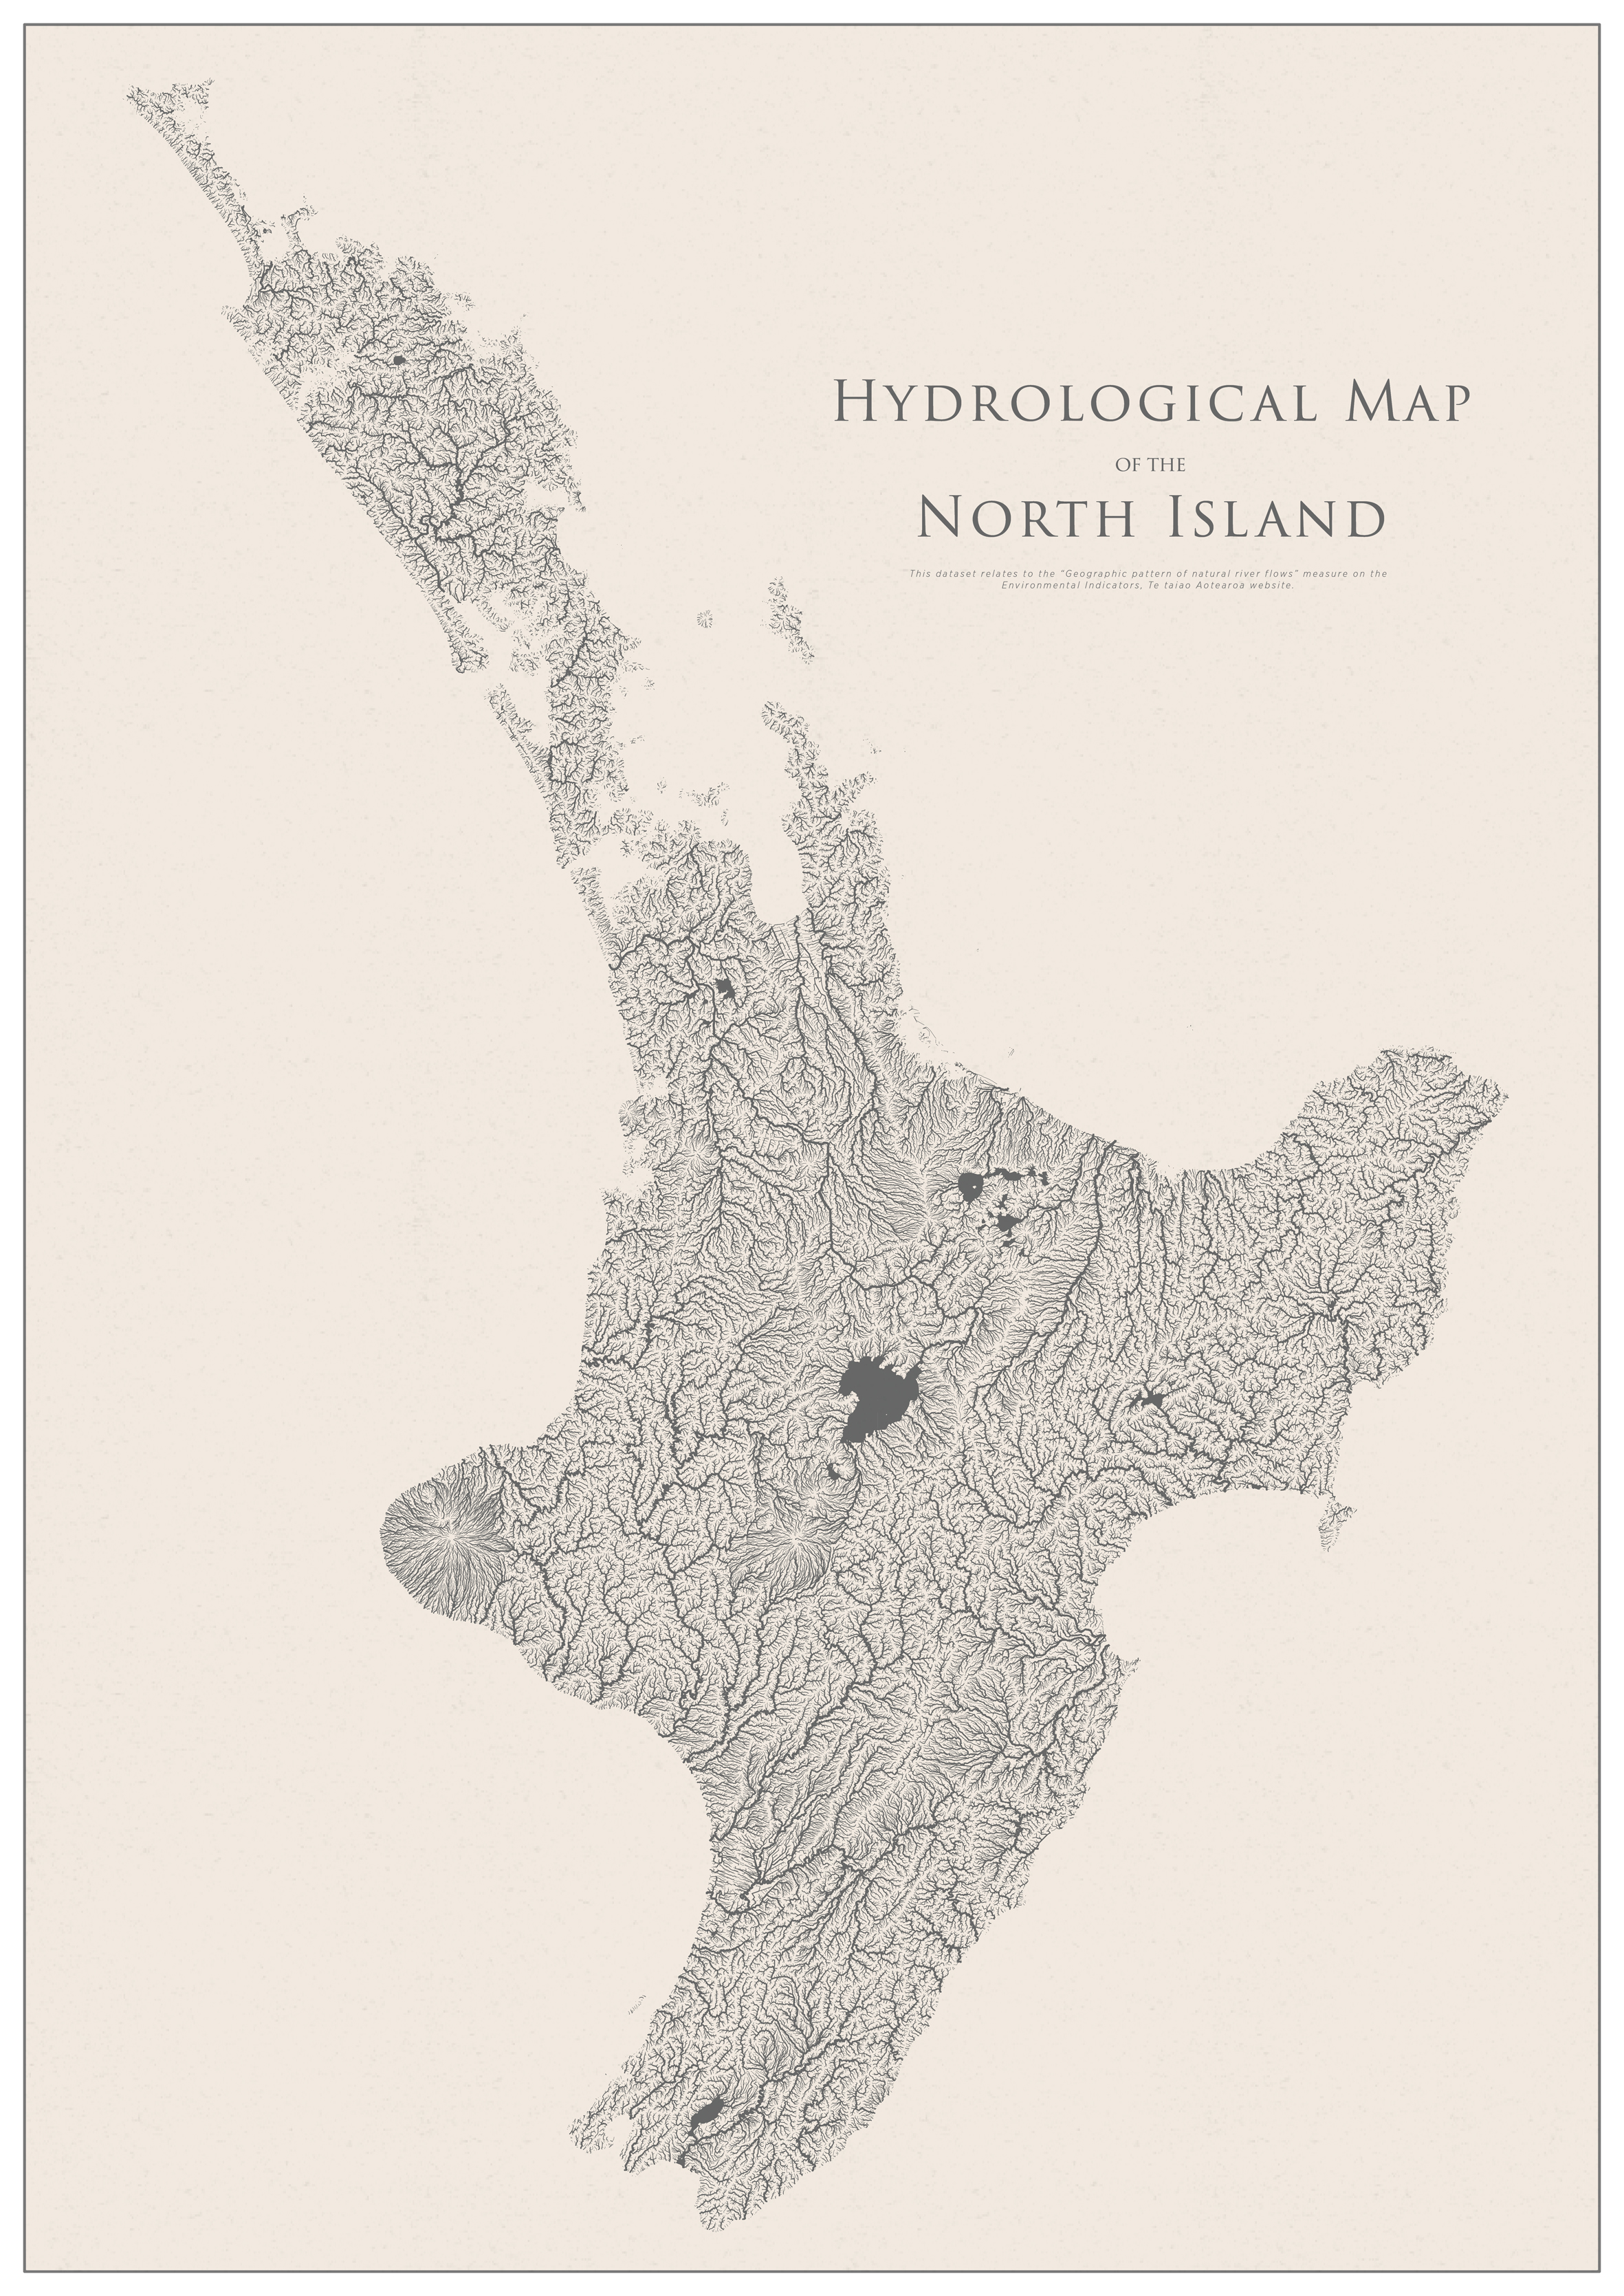 Hydrological Map of the North Island